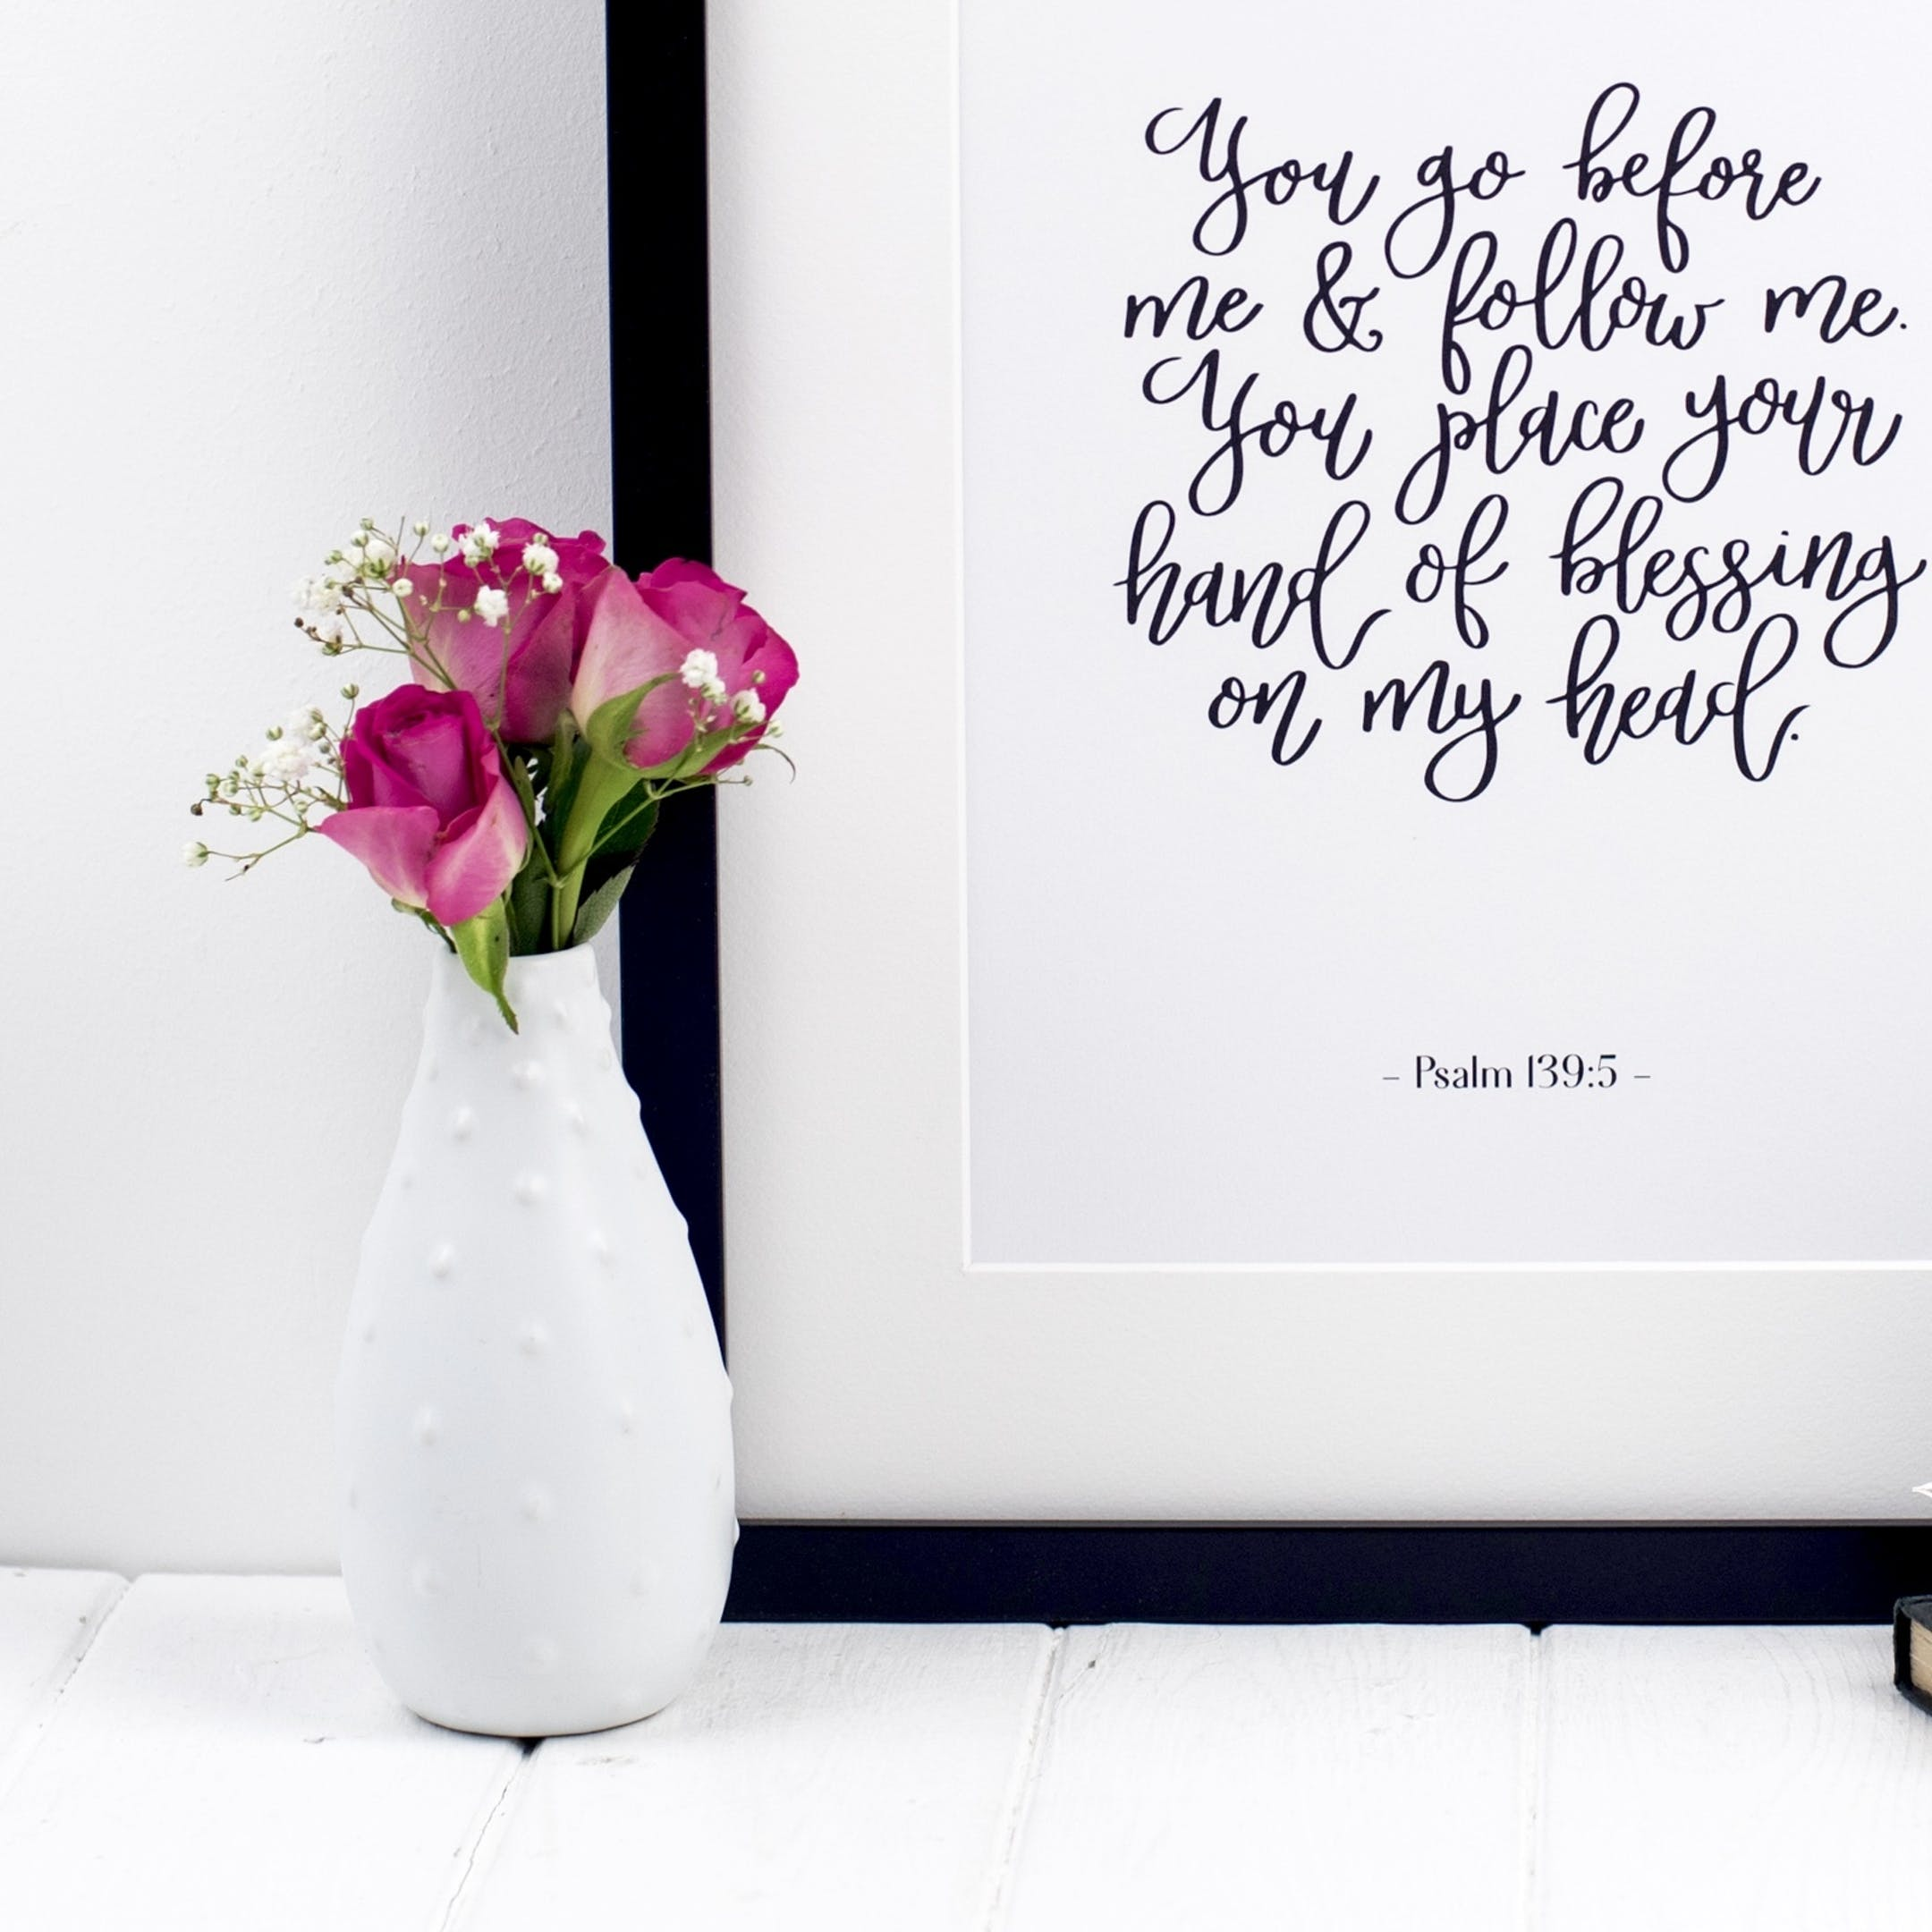 You Go Before Me - Psalm 139:5 Print - Izzy and Pop